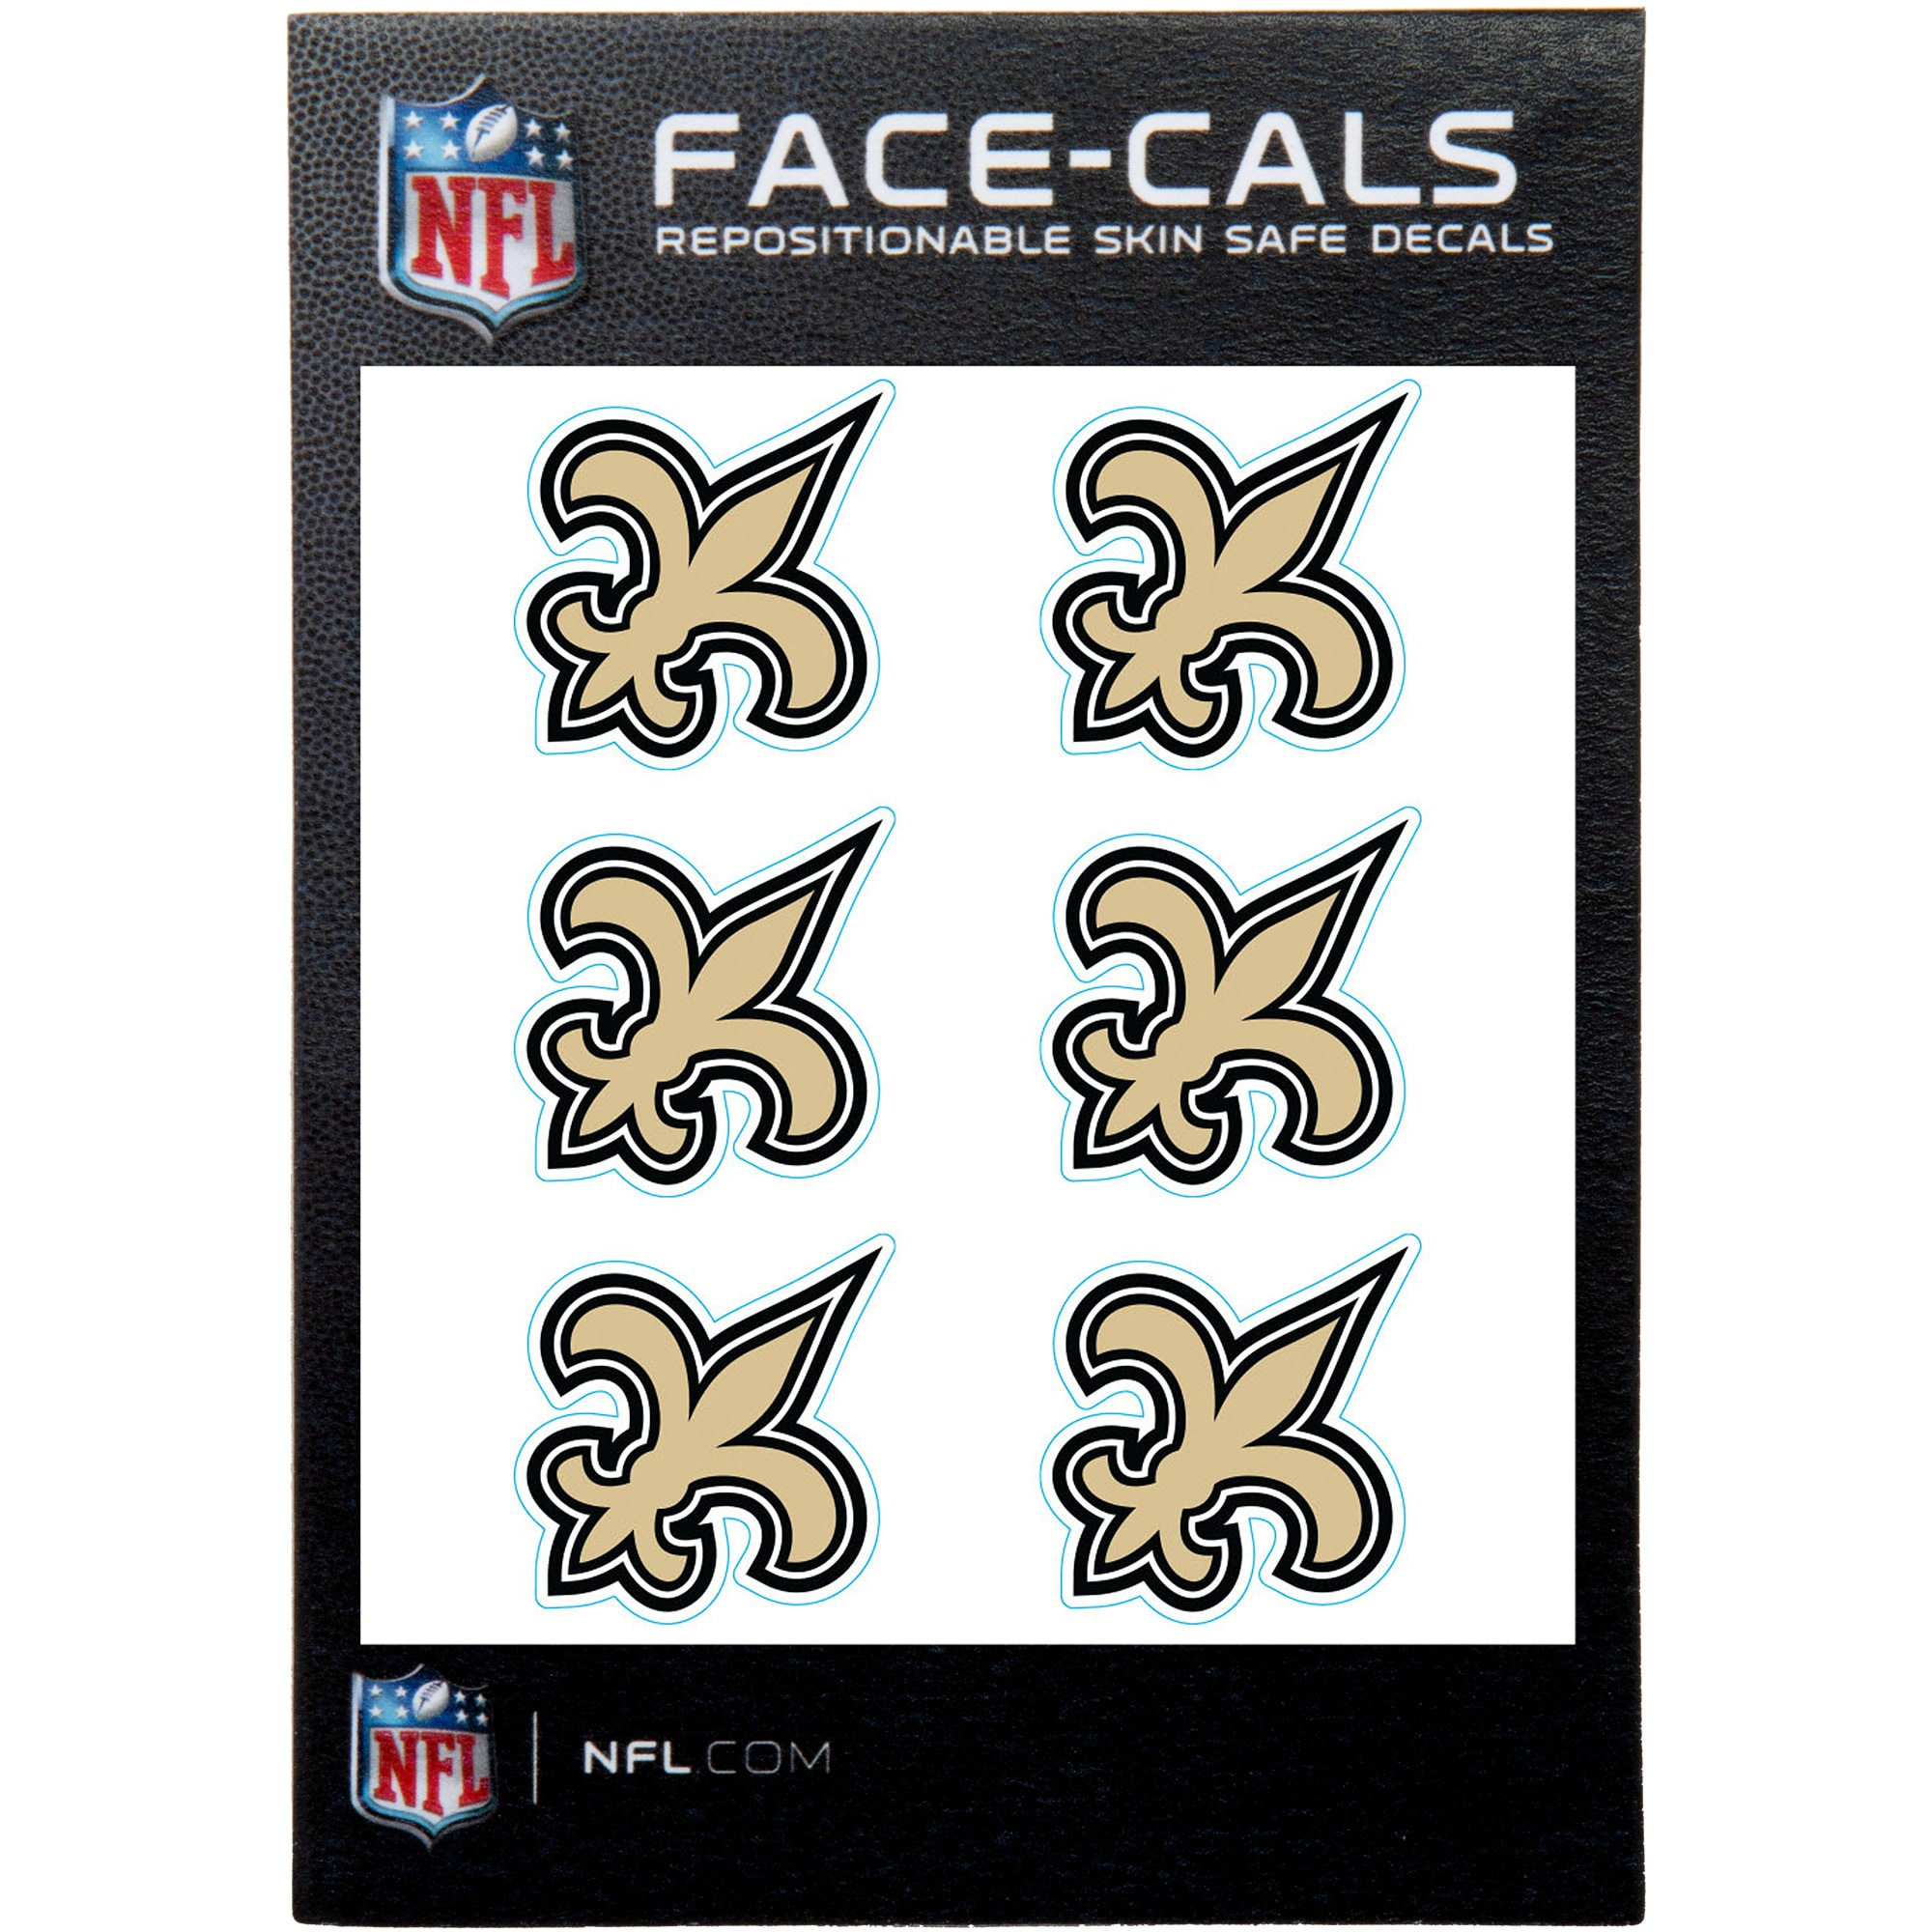 New Orleans Saints 6-Pack Mini-Cals Face Decals